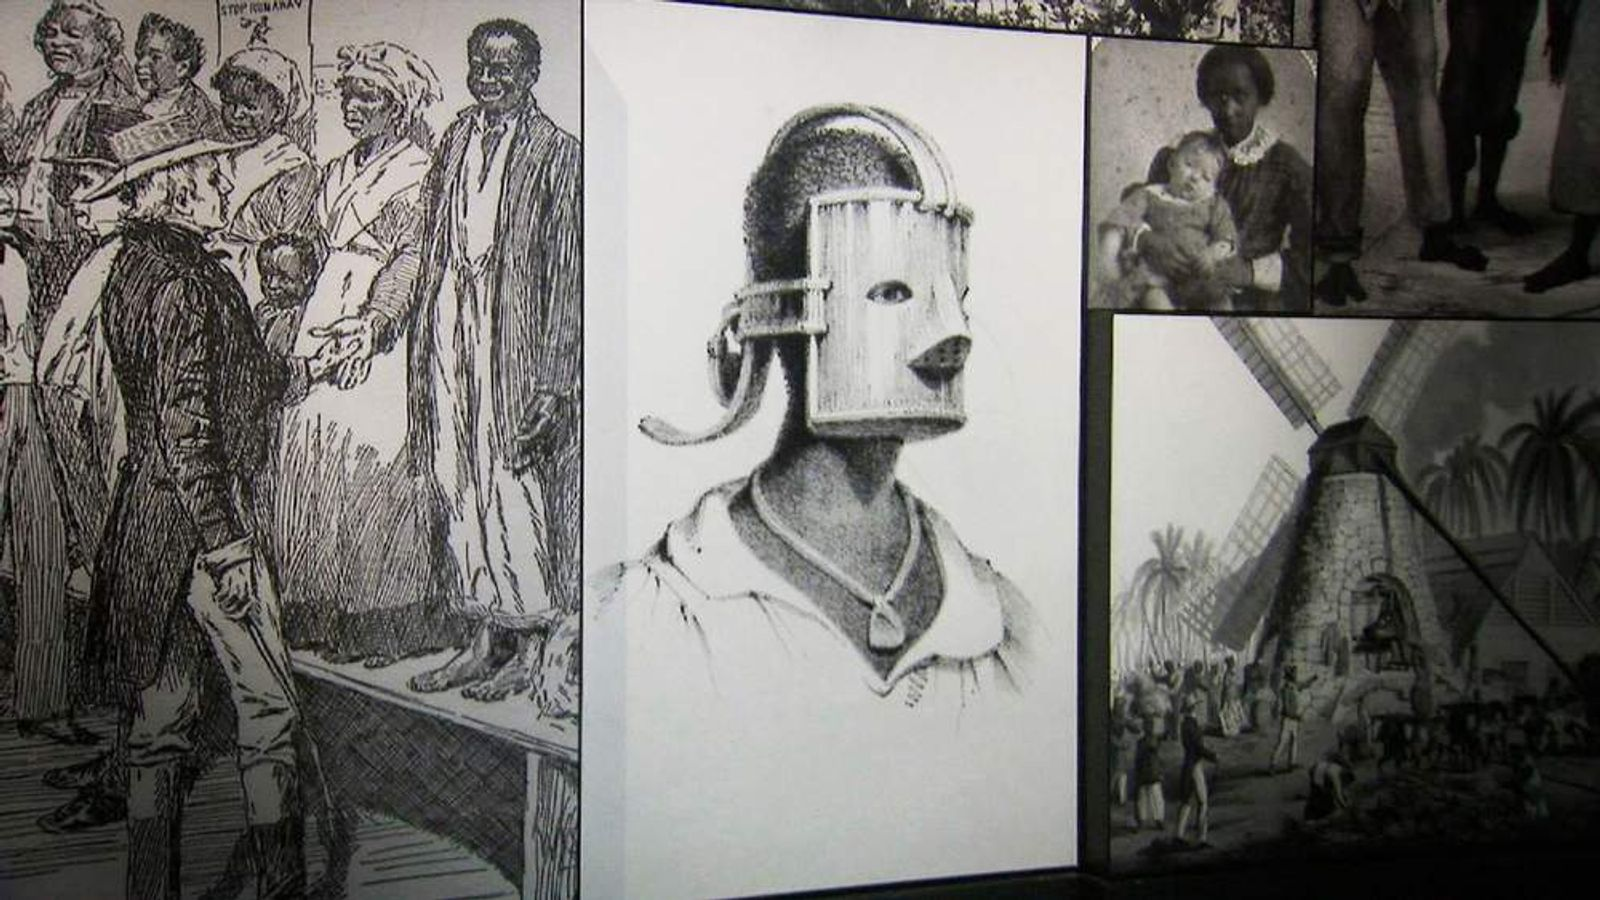 The UK's involvement in the slave trade